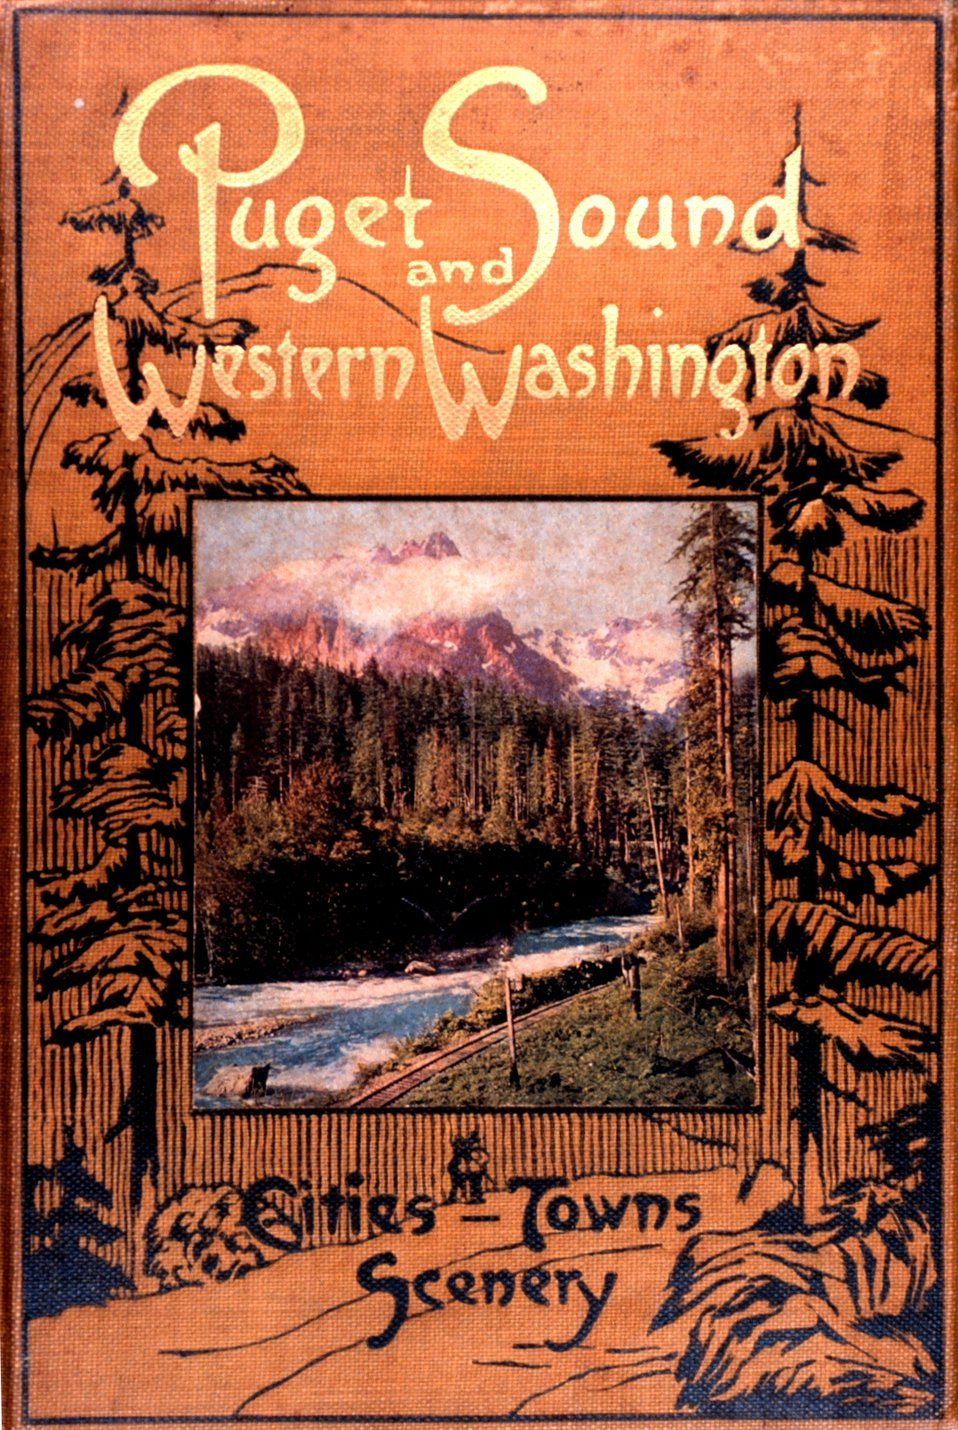 The cover to 'Puget Sound and Western Washington  Cities-Towns Scenery', by Robert A. Reid, Robert A. Reid Publisher, Seattle, 1912.